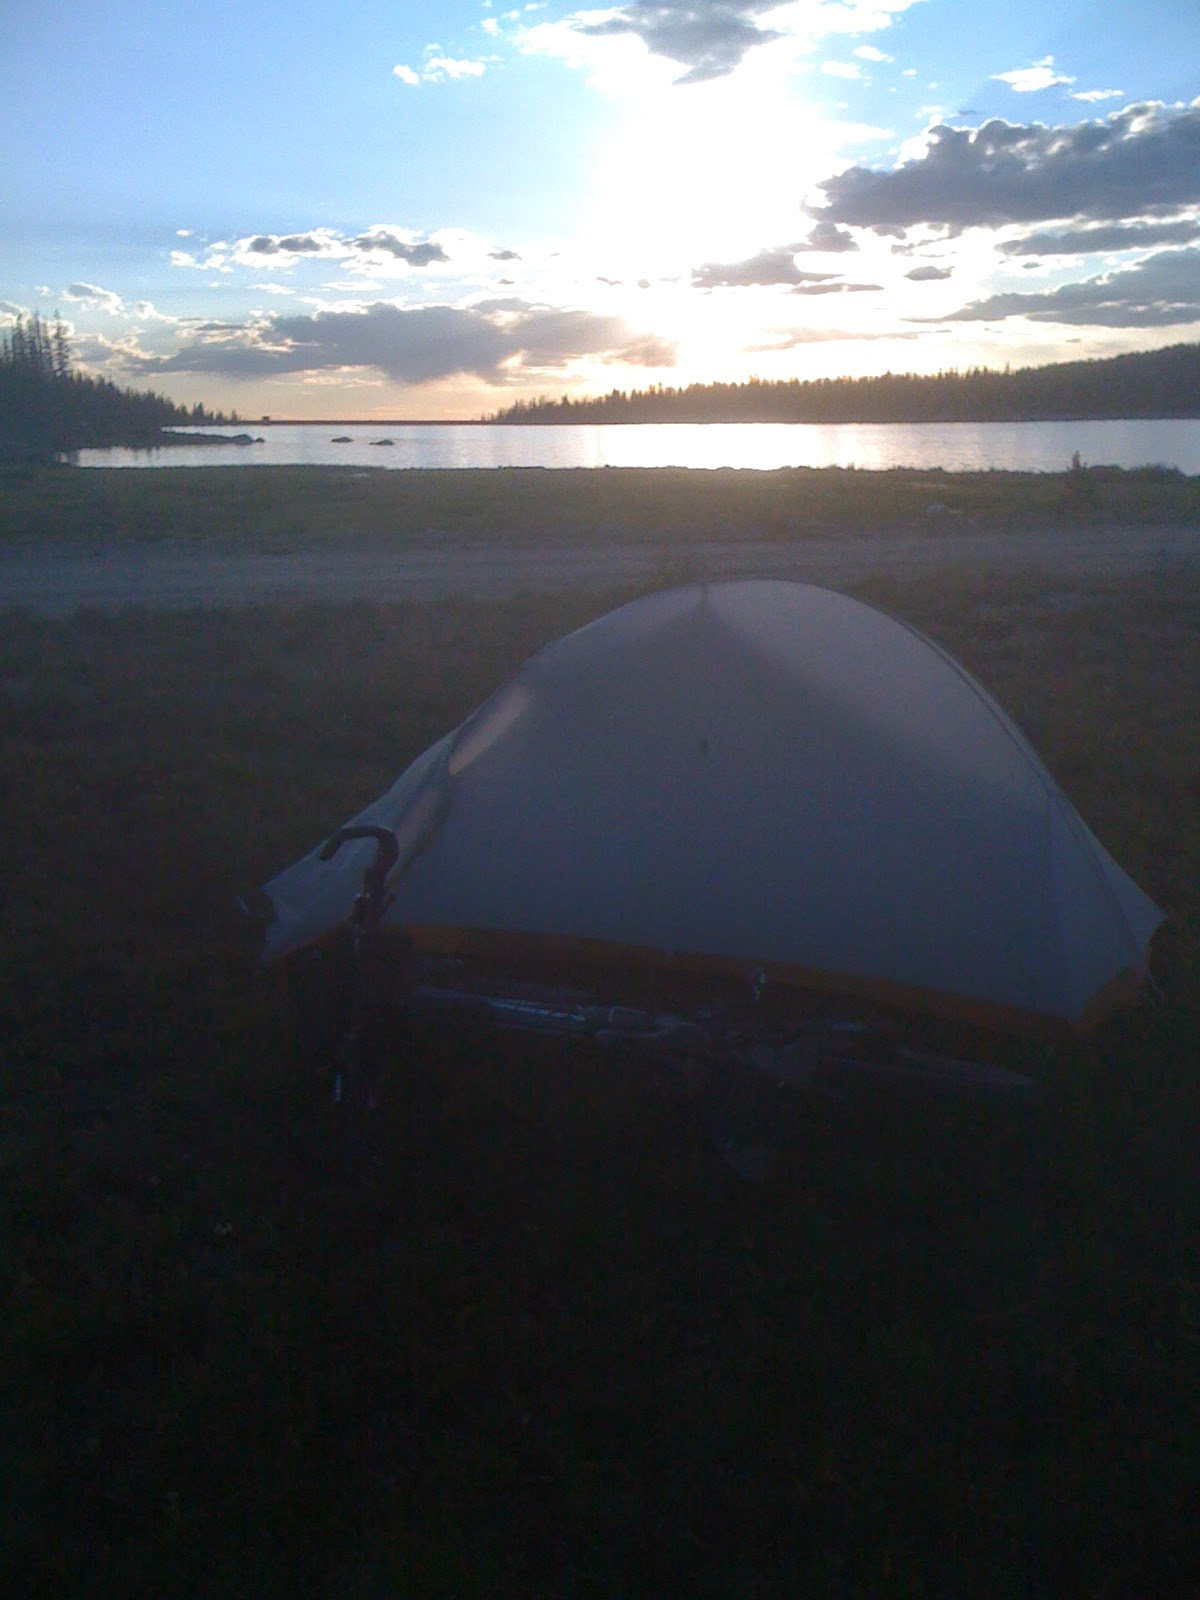 Big Agnes Fly Creek UL2 at the foot of Fish Creek Reservoir